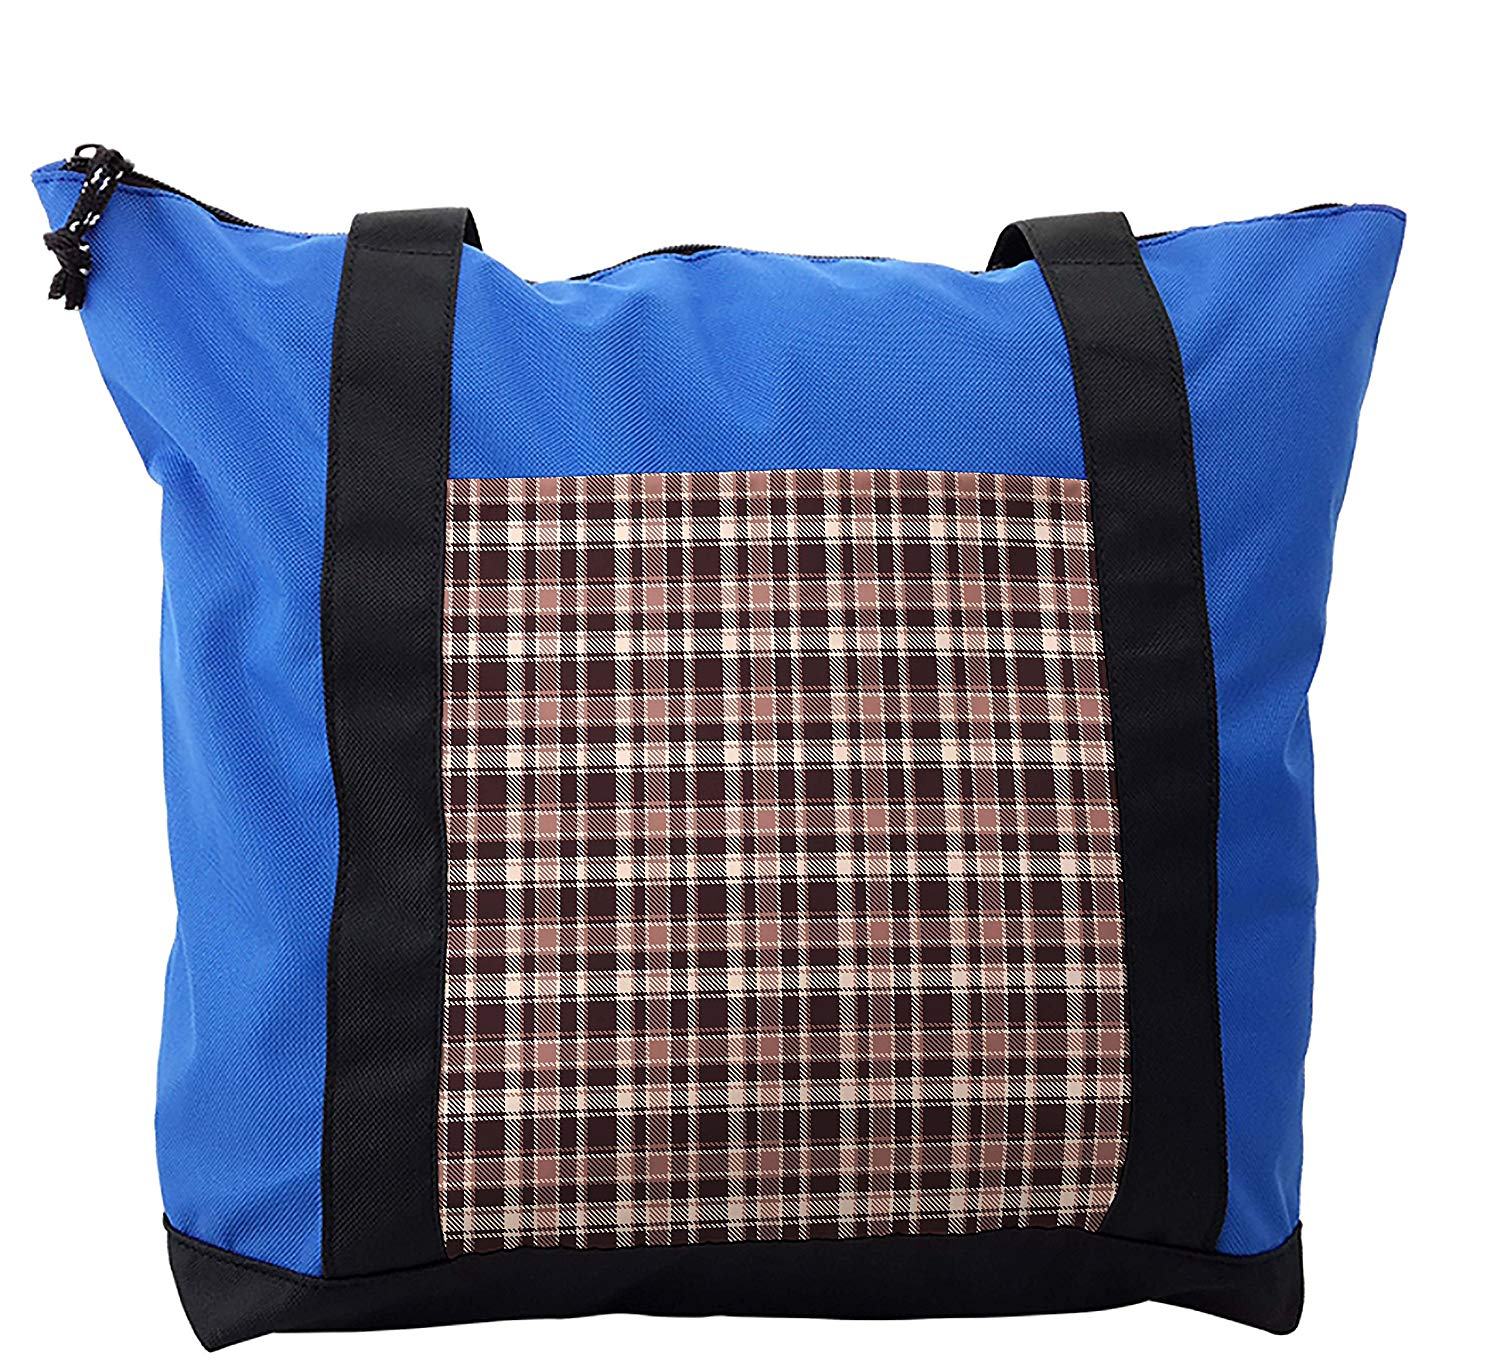 Lunarable Vintage Shoulder Bag, Gingham Style Checkered, Durable with Zipper